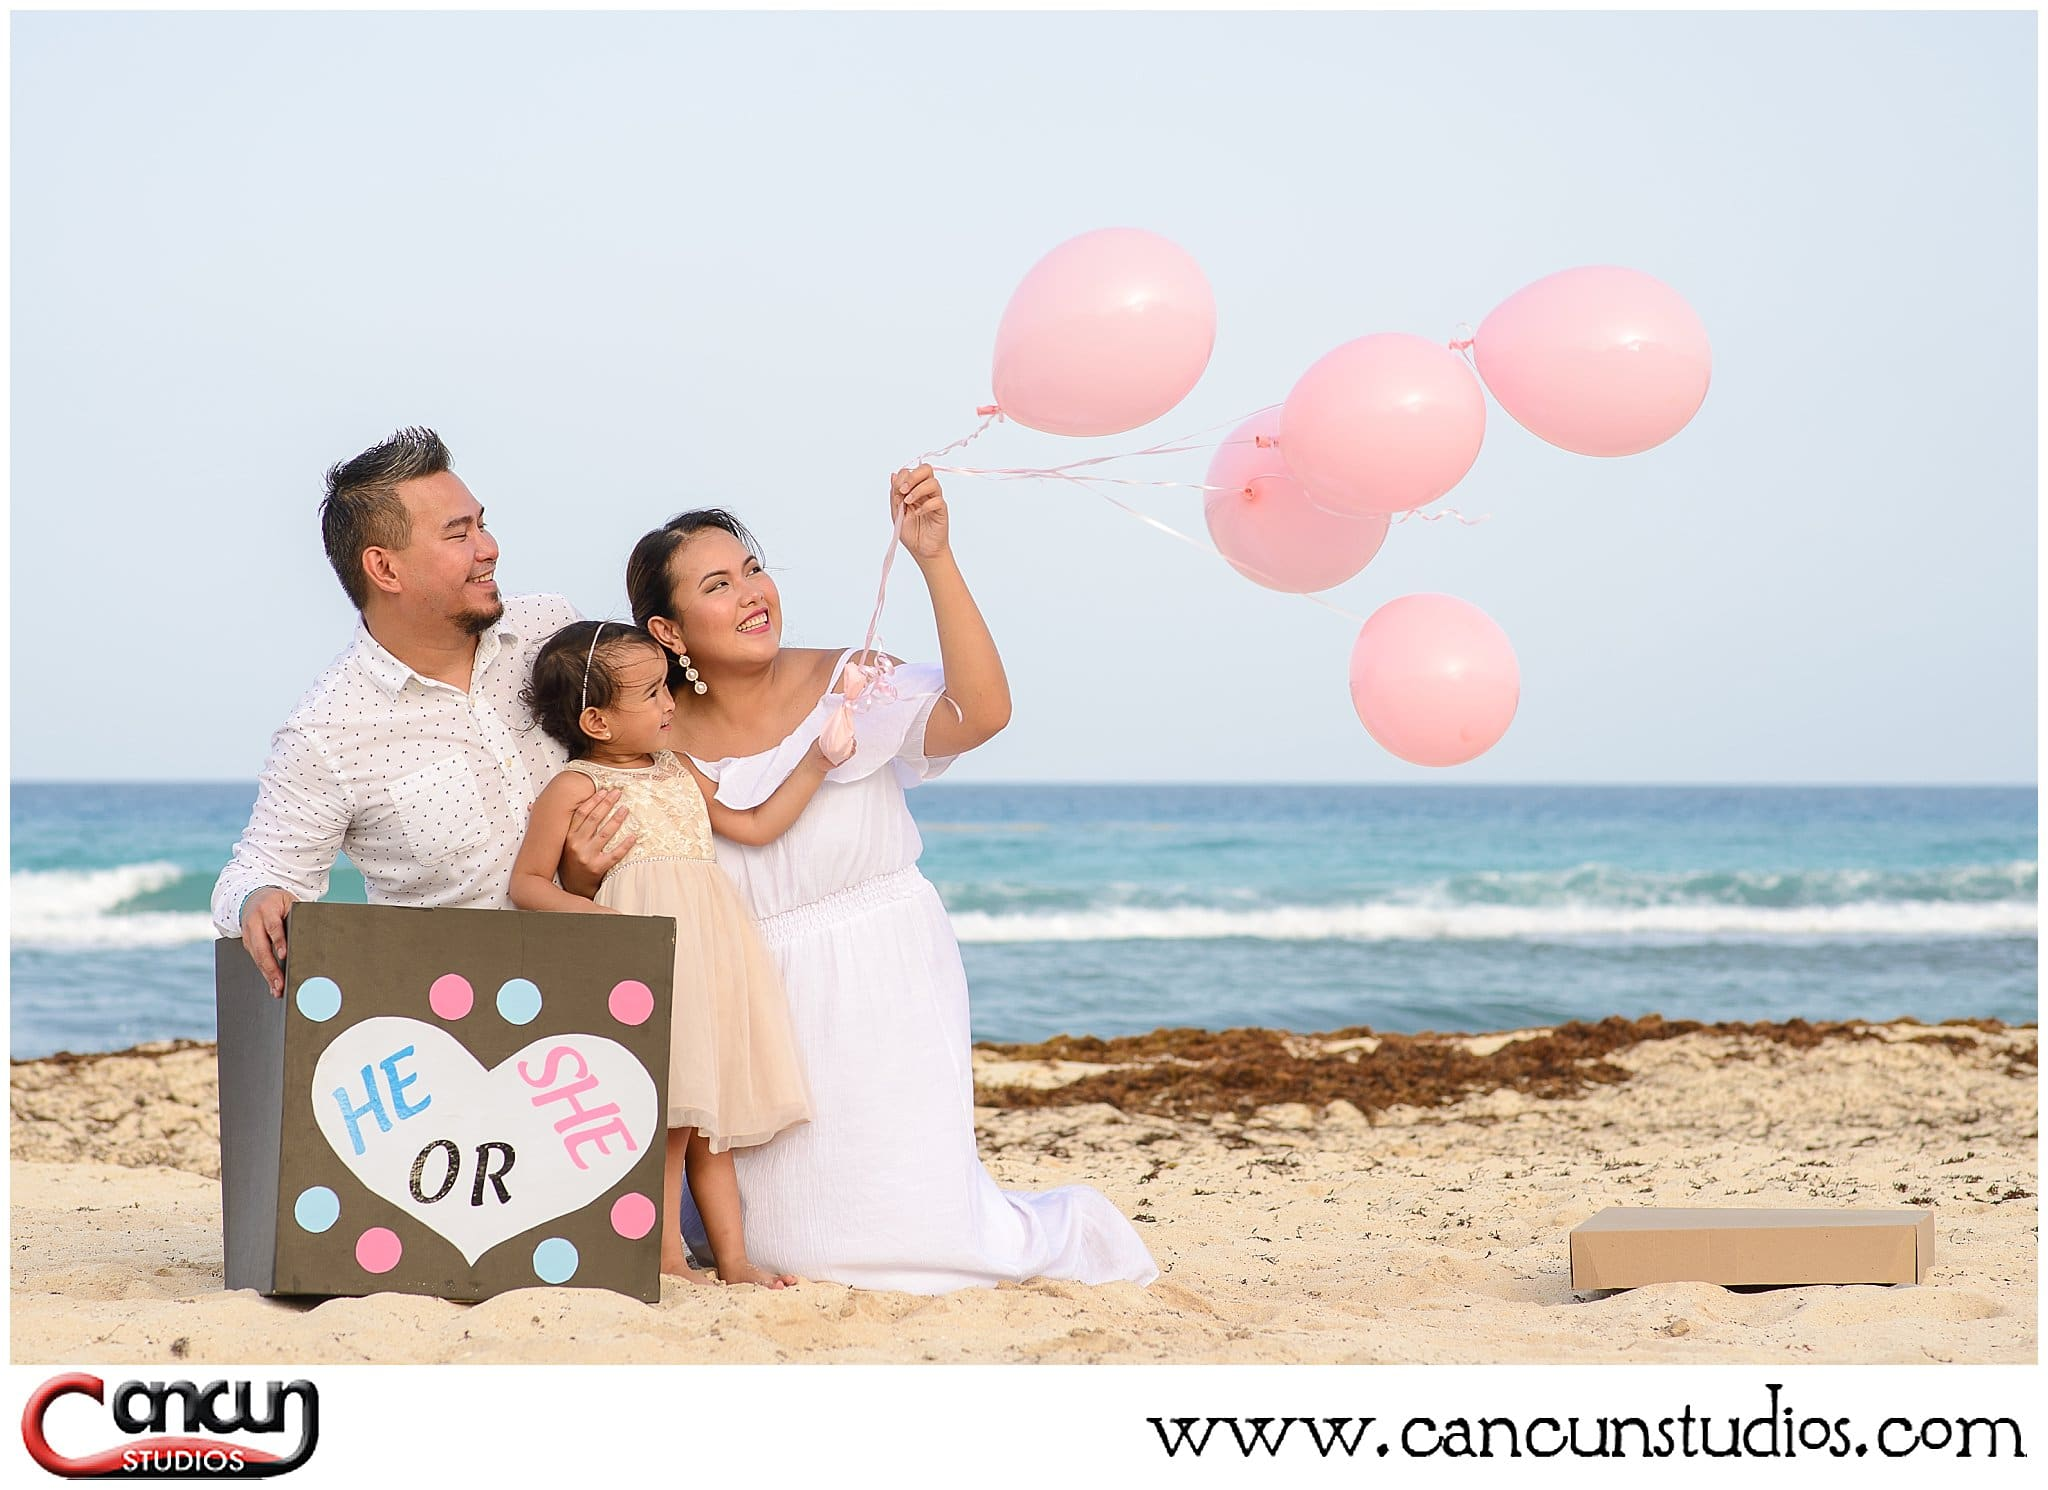 Baby Gender reveal on the beach in Cancun